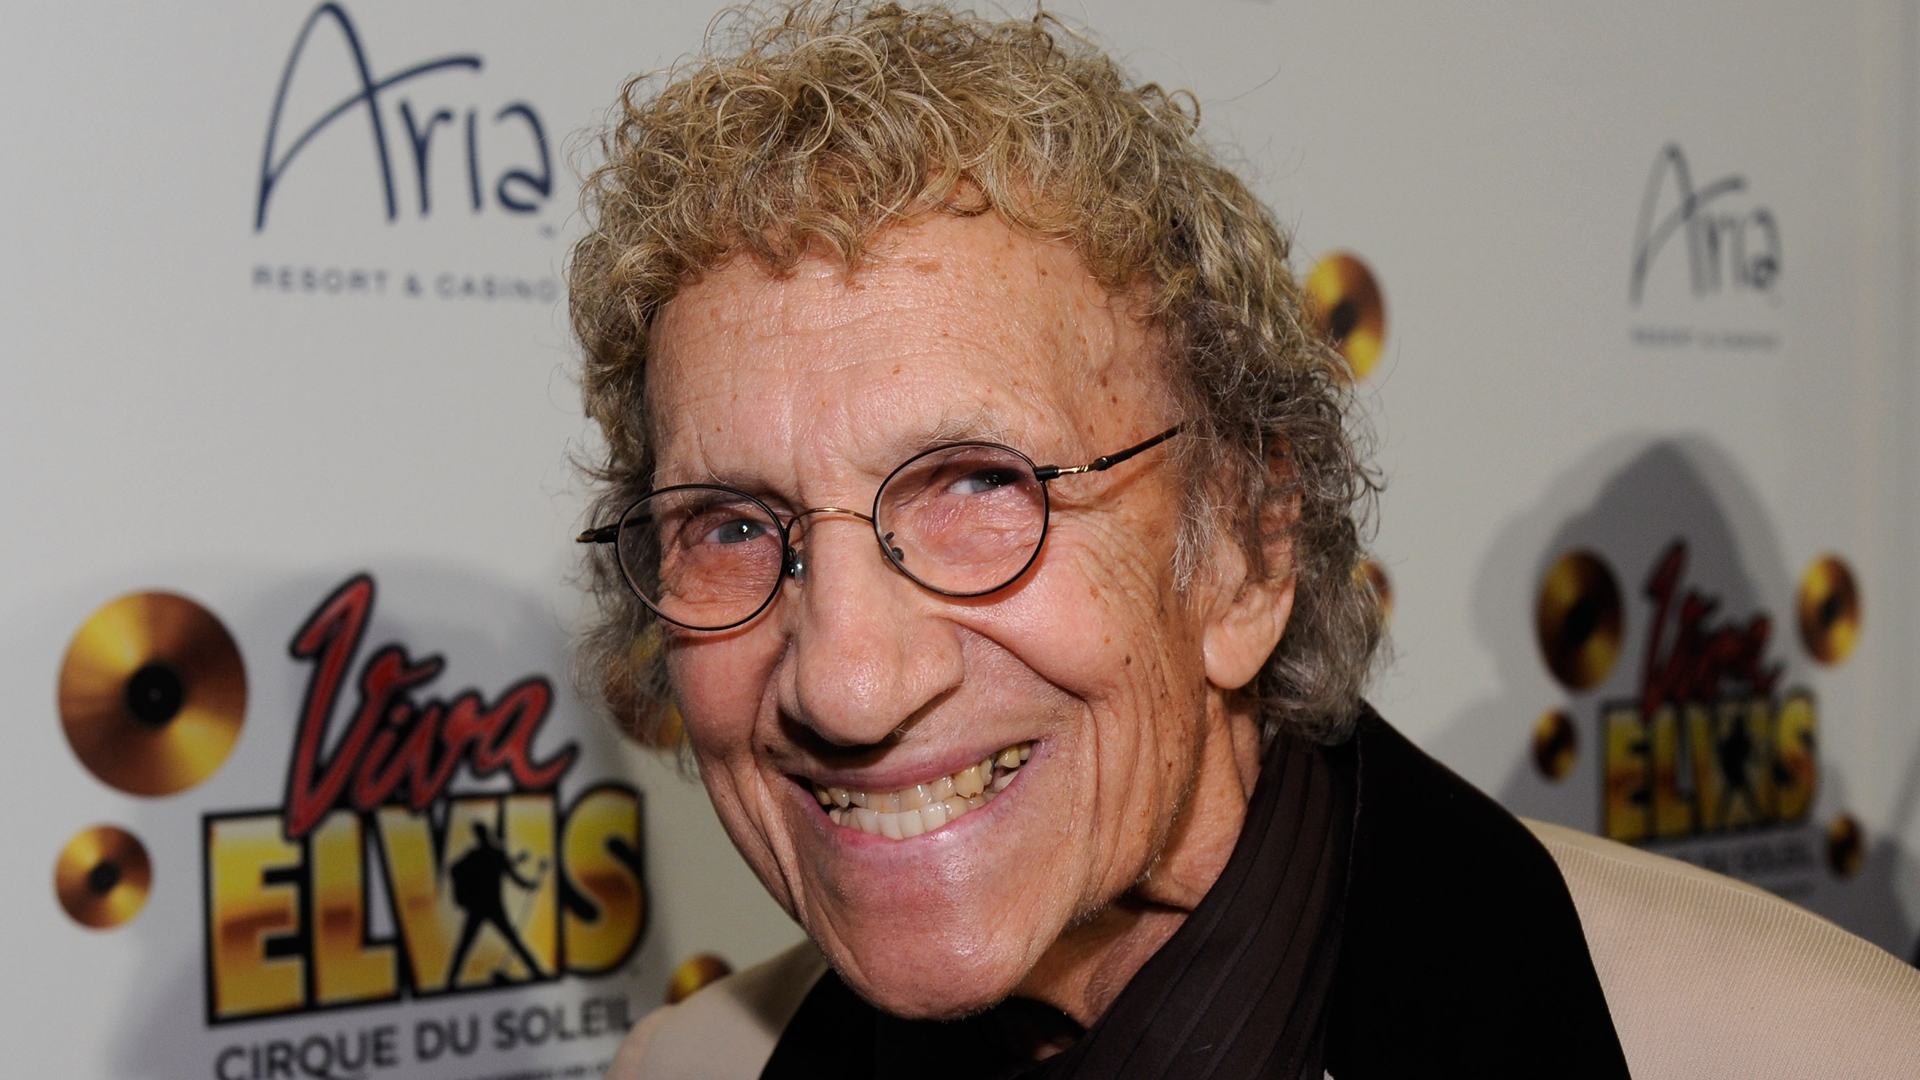 """Comedian Sammy Shore arrives at the world premiere of Cirque du Soleil's """"Viva ELVIS"""" production at the Aria Resort & Casino on Feb. 19, 2010, in Las Vegas, Nevada. (Credit: Ethan Miller/Getty Images for Cirque du Soleil)"""